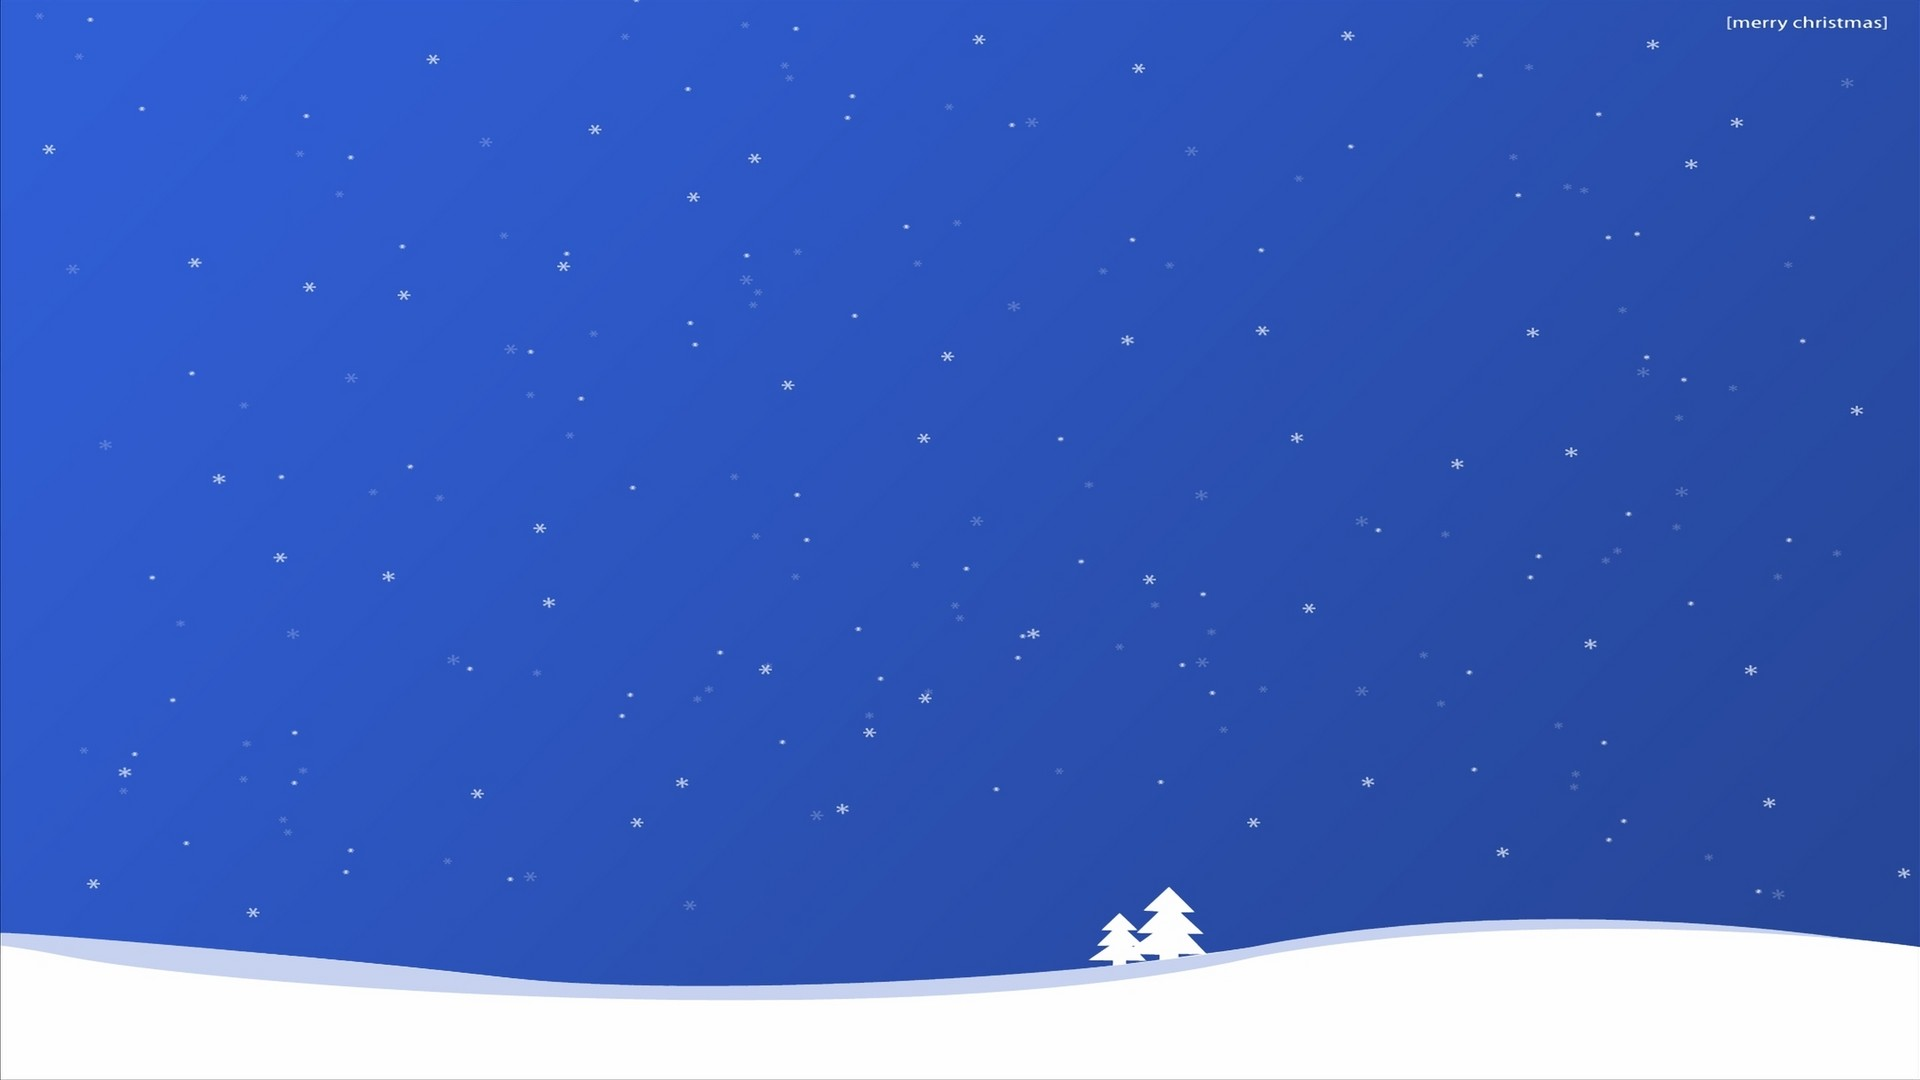 wallpaper christmas wallpapers clean abstract 1920×1080